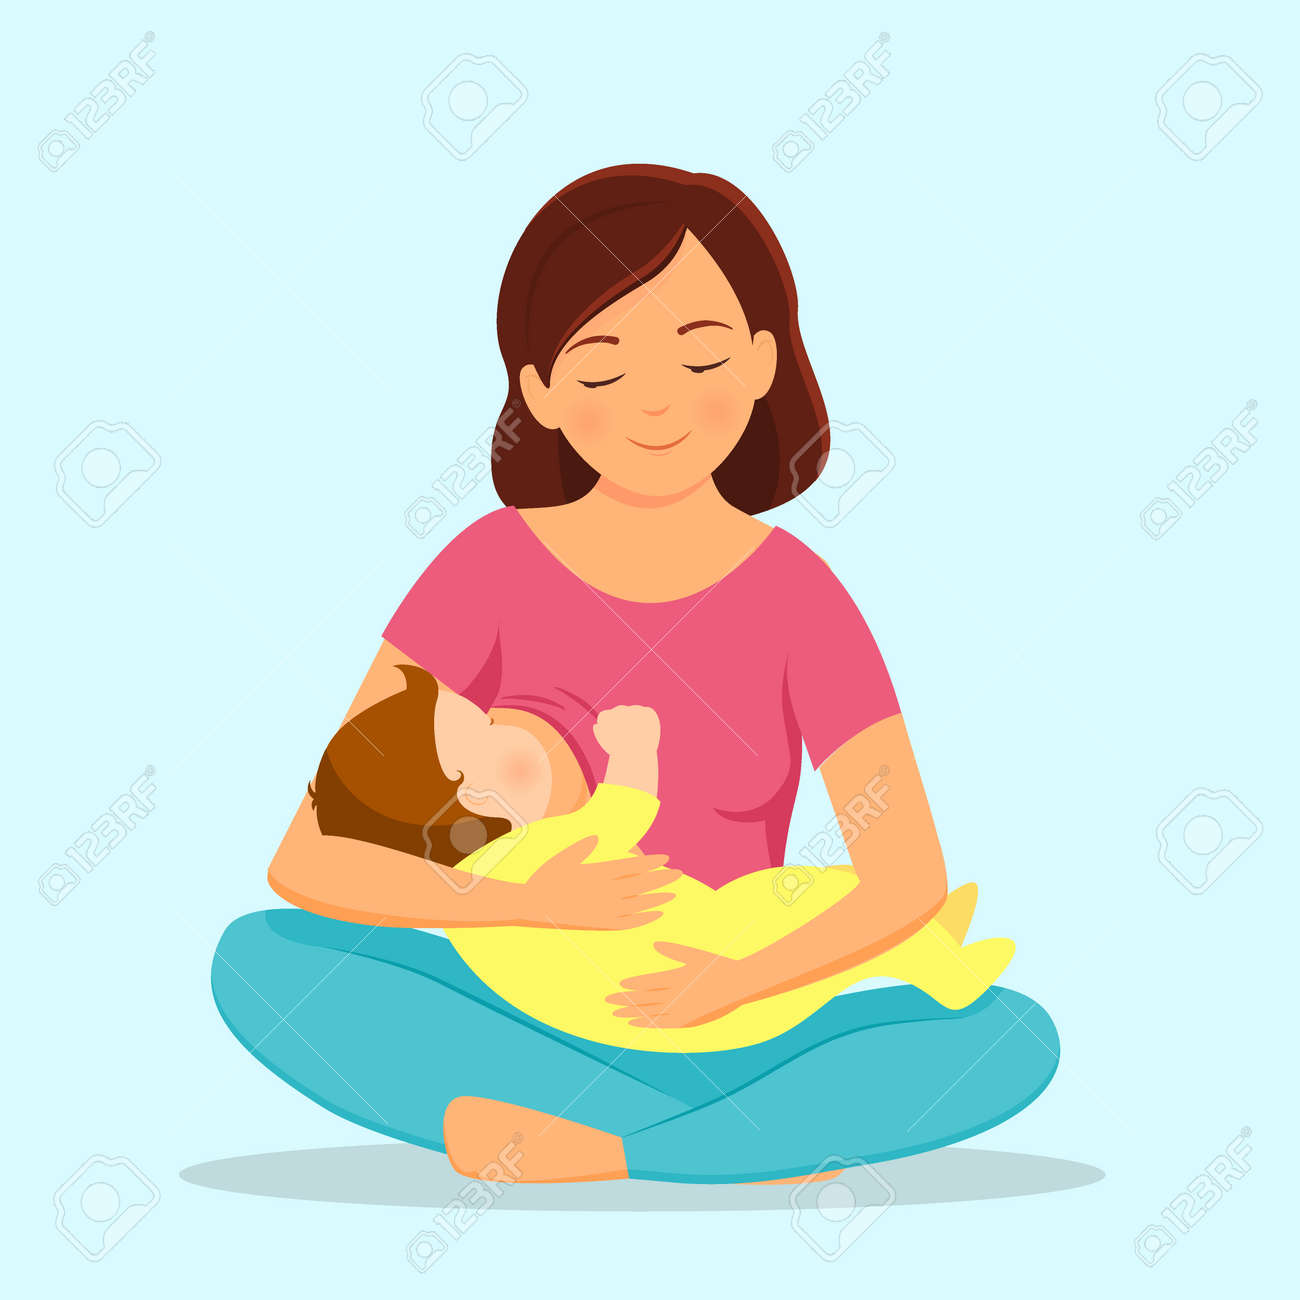 Mother breastfeeding baby.Mother and baby. Vector illustration. - 111943675